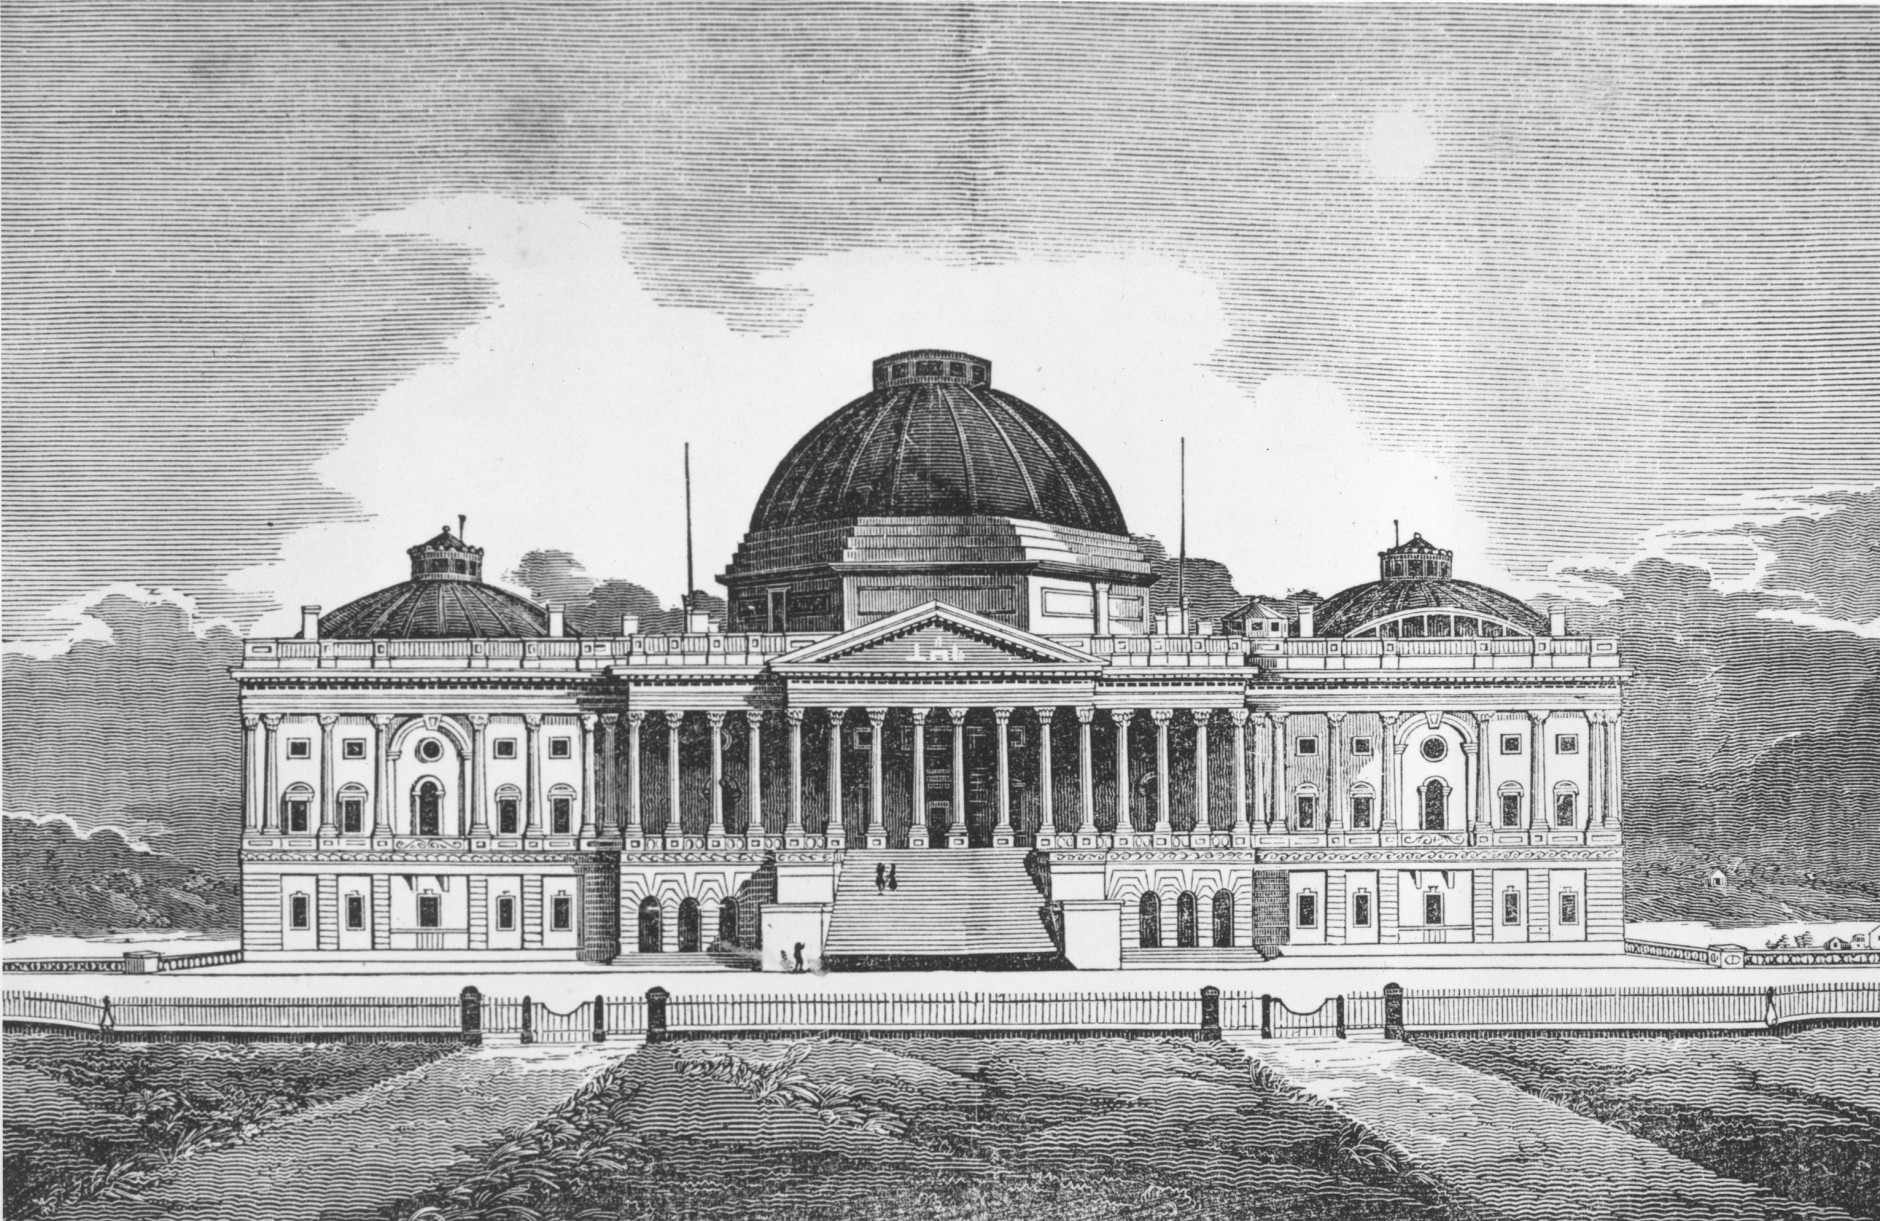 On September 18, 1793, President George Washington laid the cornerstone of the U.S. Capitol. The north and south wings, central portion and low wooden dome of the U.S. Capitol building in Washington, D.C., is shown in this illustration circa 1840.  (AP Photo)